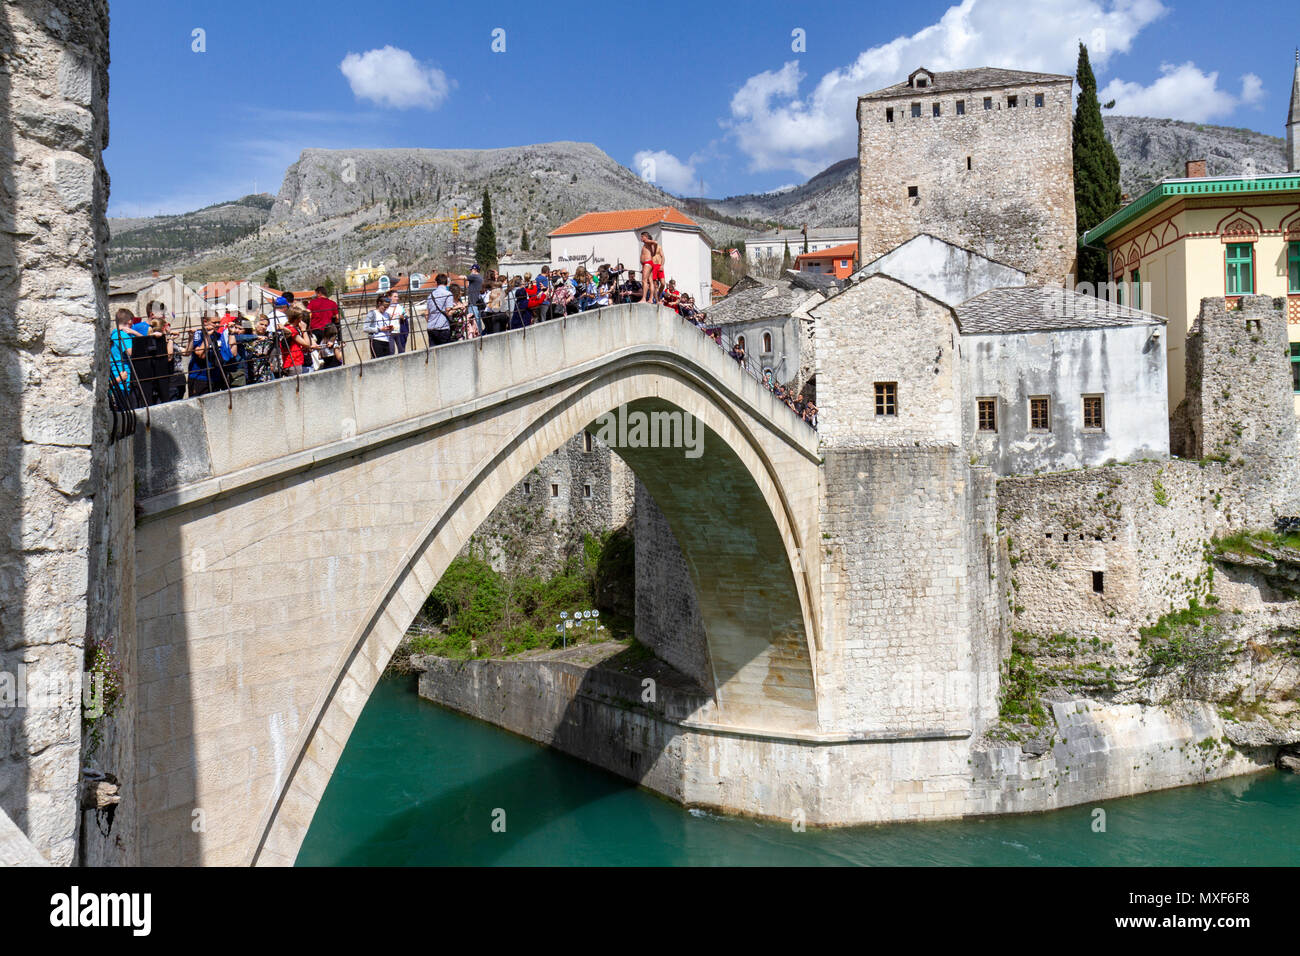 The historic Stari Most (Old Bridge) over the Neretva river in Mostar, the Federation of Bosnia and Herzegovina. - Stock Image